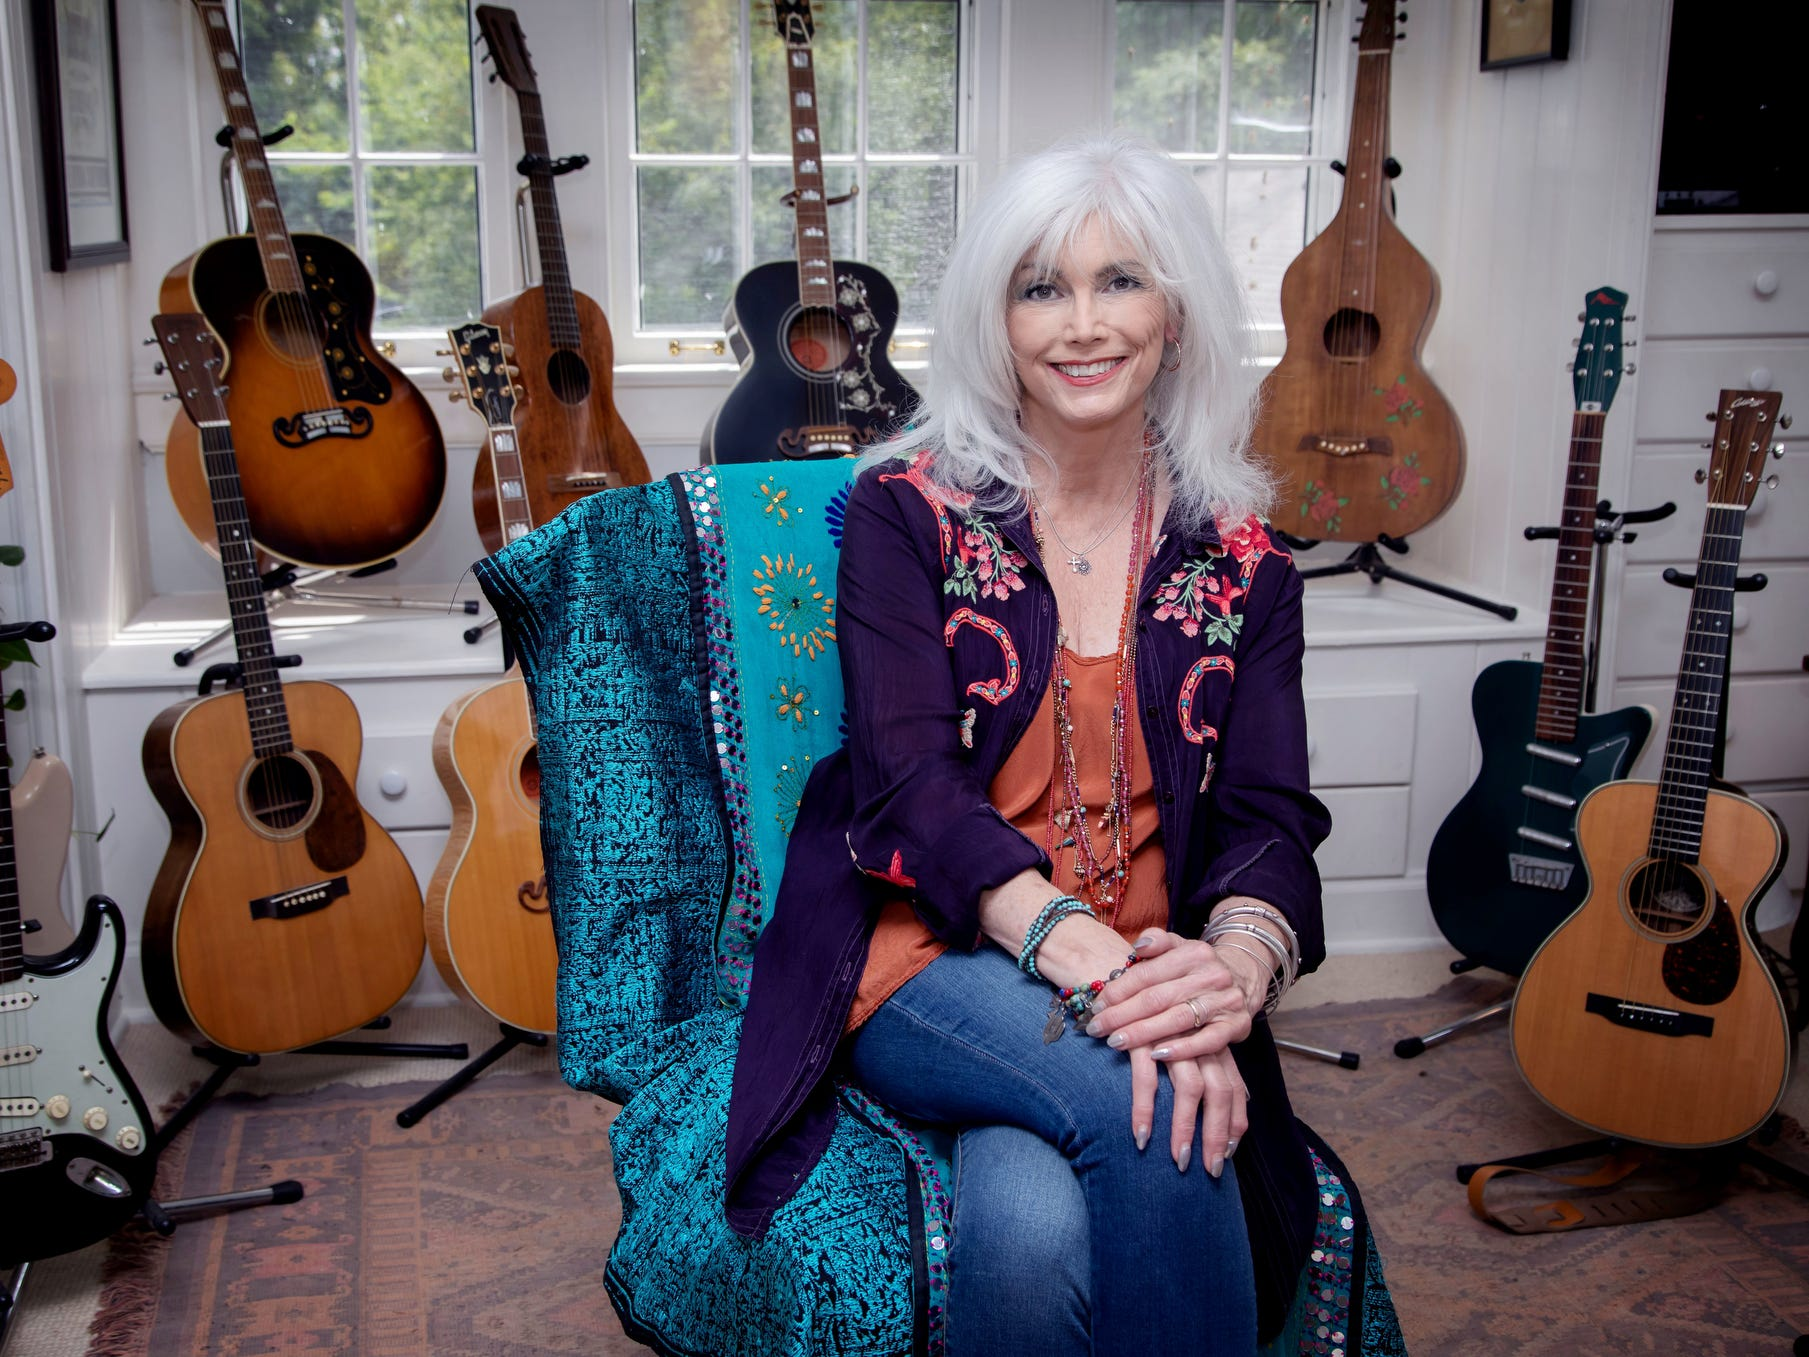 OCT. 25